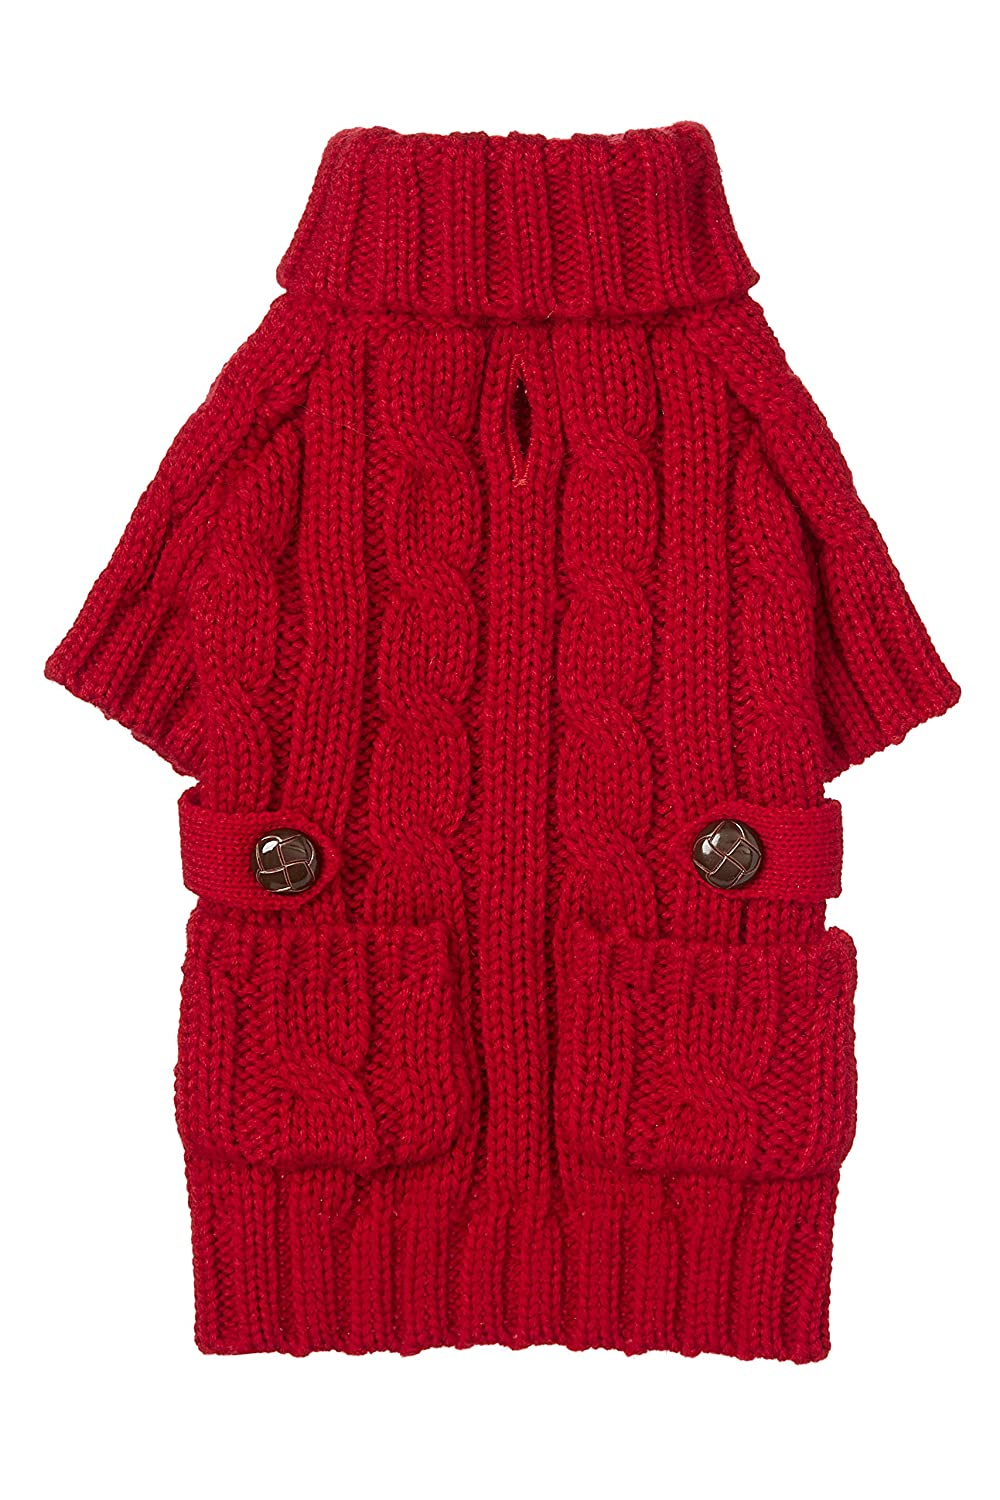 Fab Dog Chunky Turtleneck Dog Sweater, Red, 10-Inch Length